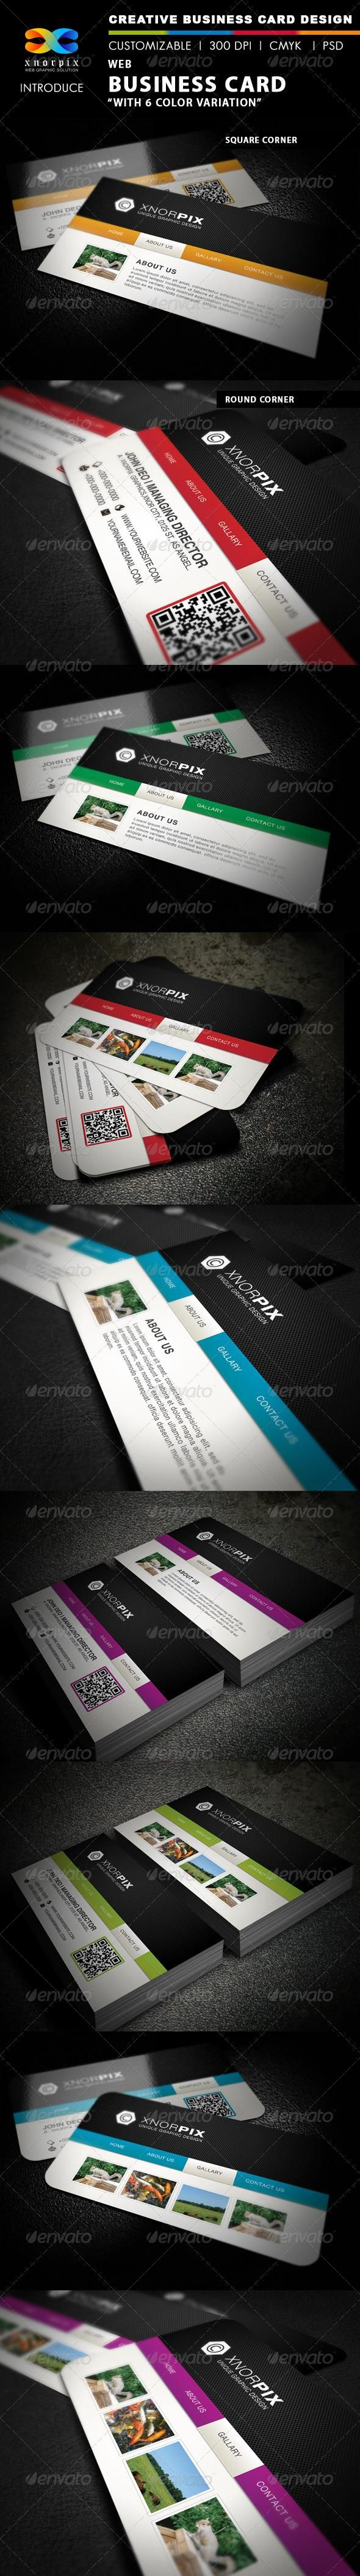 1661 best Business card design images on Pinterest